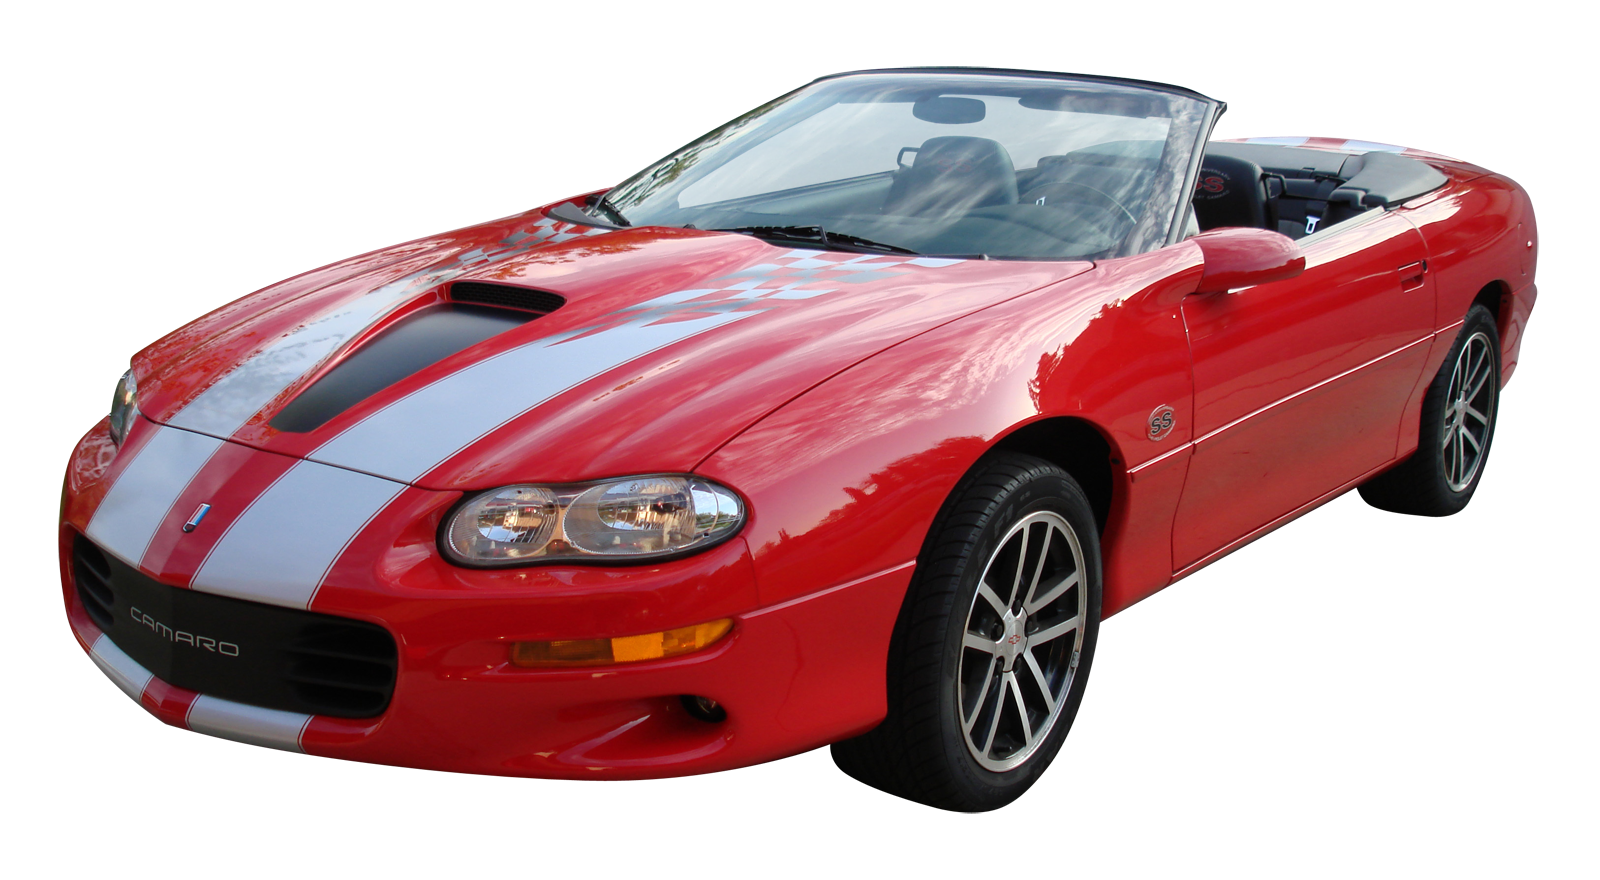 Mustang Z28 >> File:2002ChevroletCamaroSS35-001.png - Wikimedia Commons